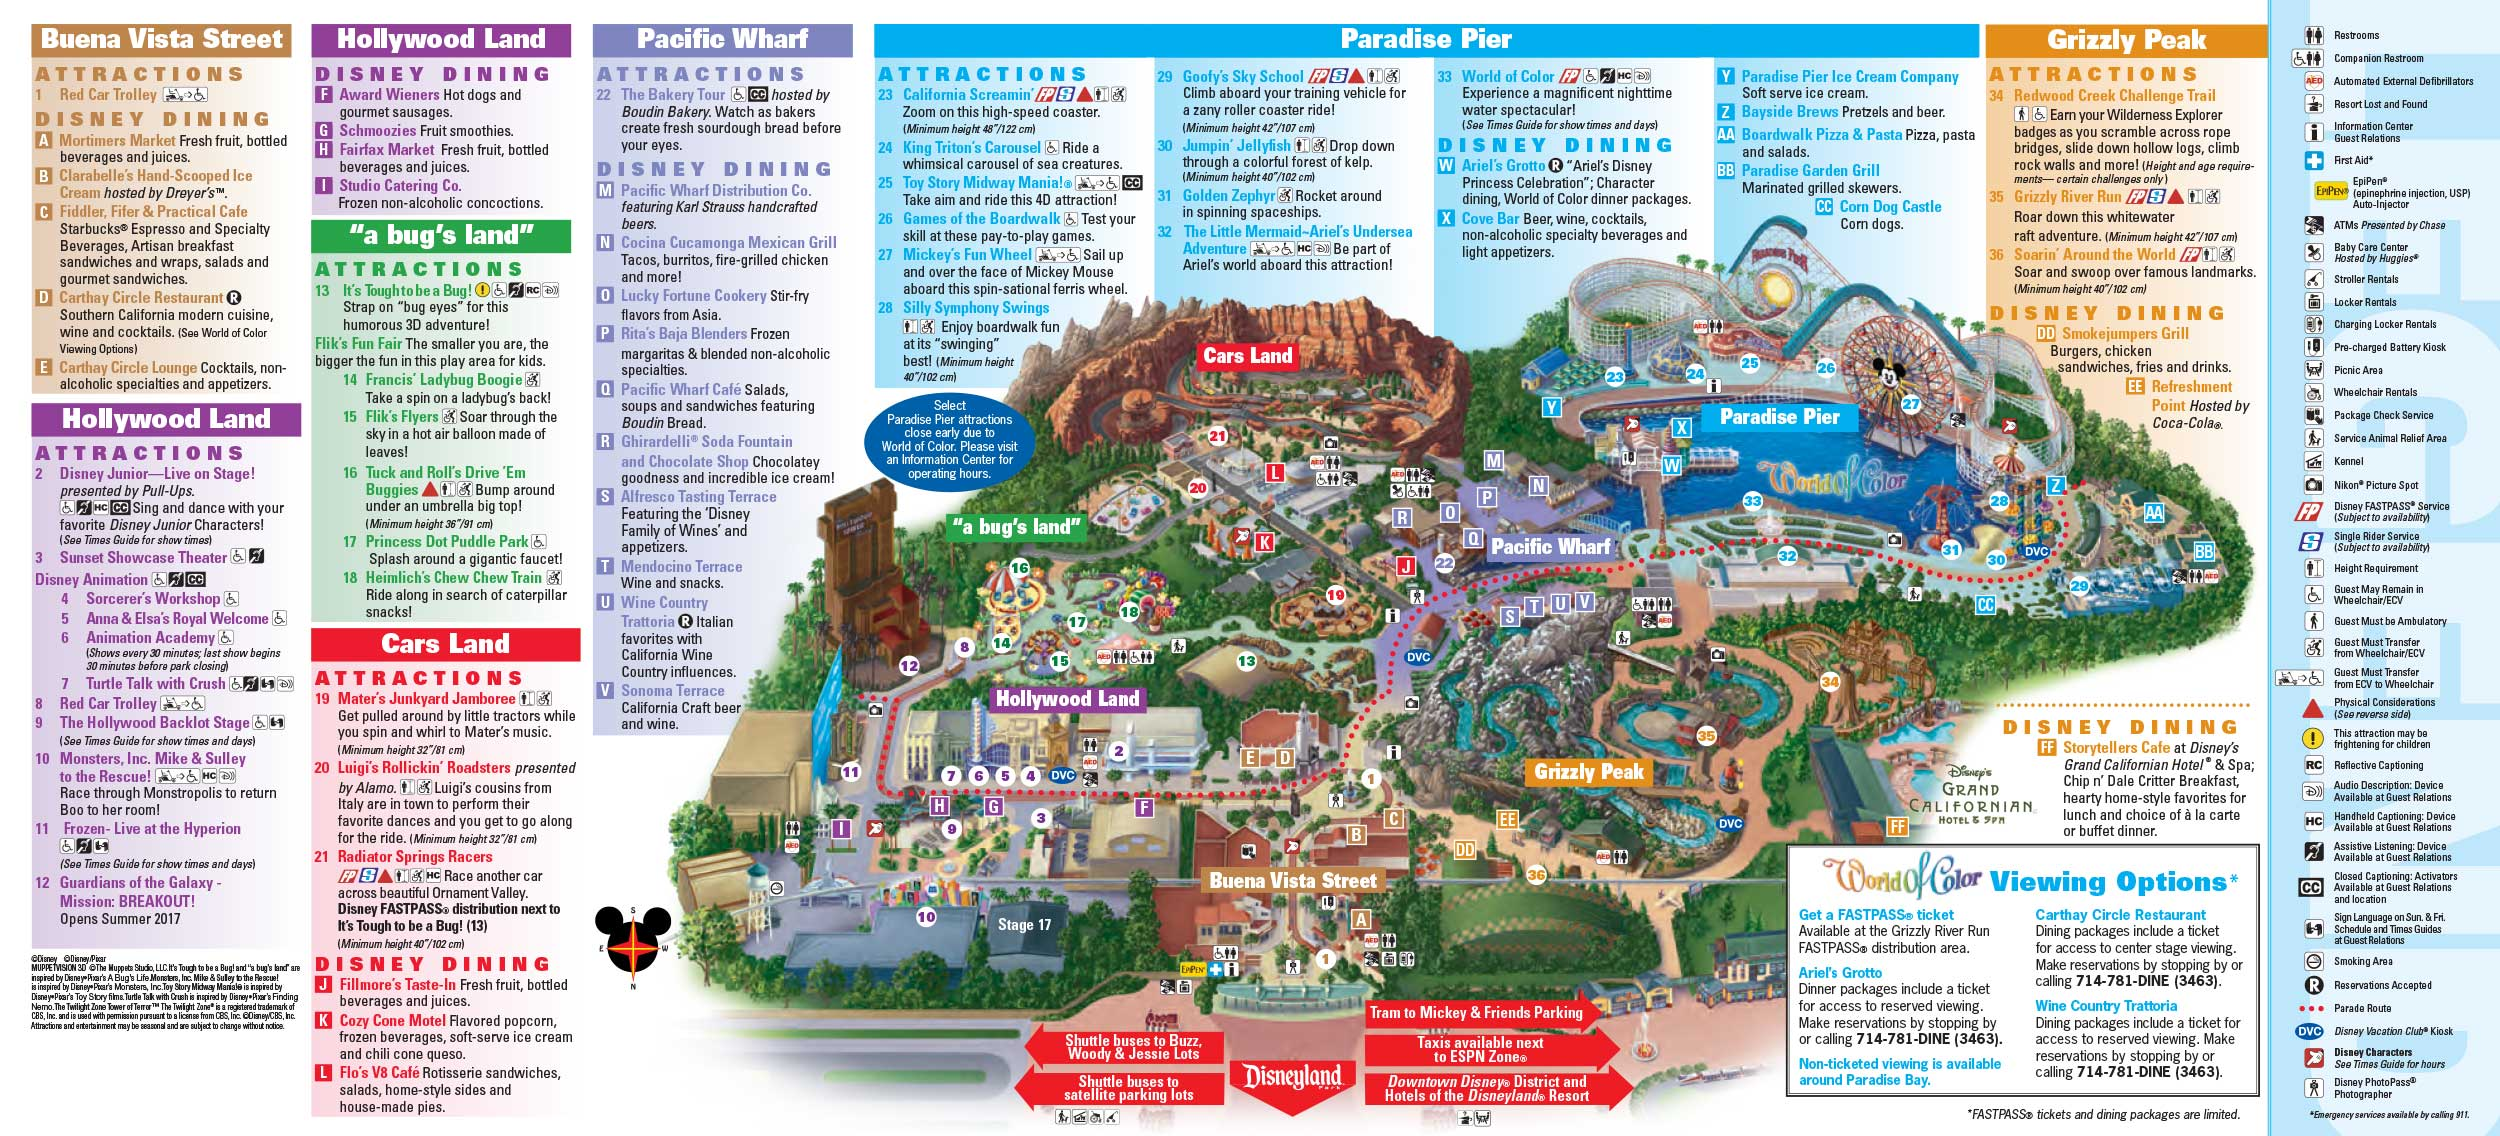 Disneyland Park Map in California, Map of Disneyland